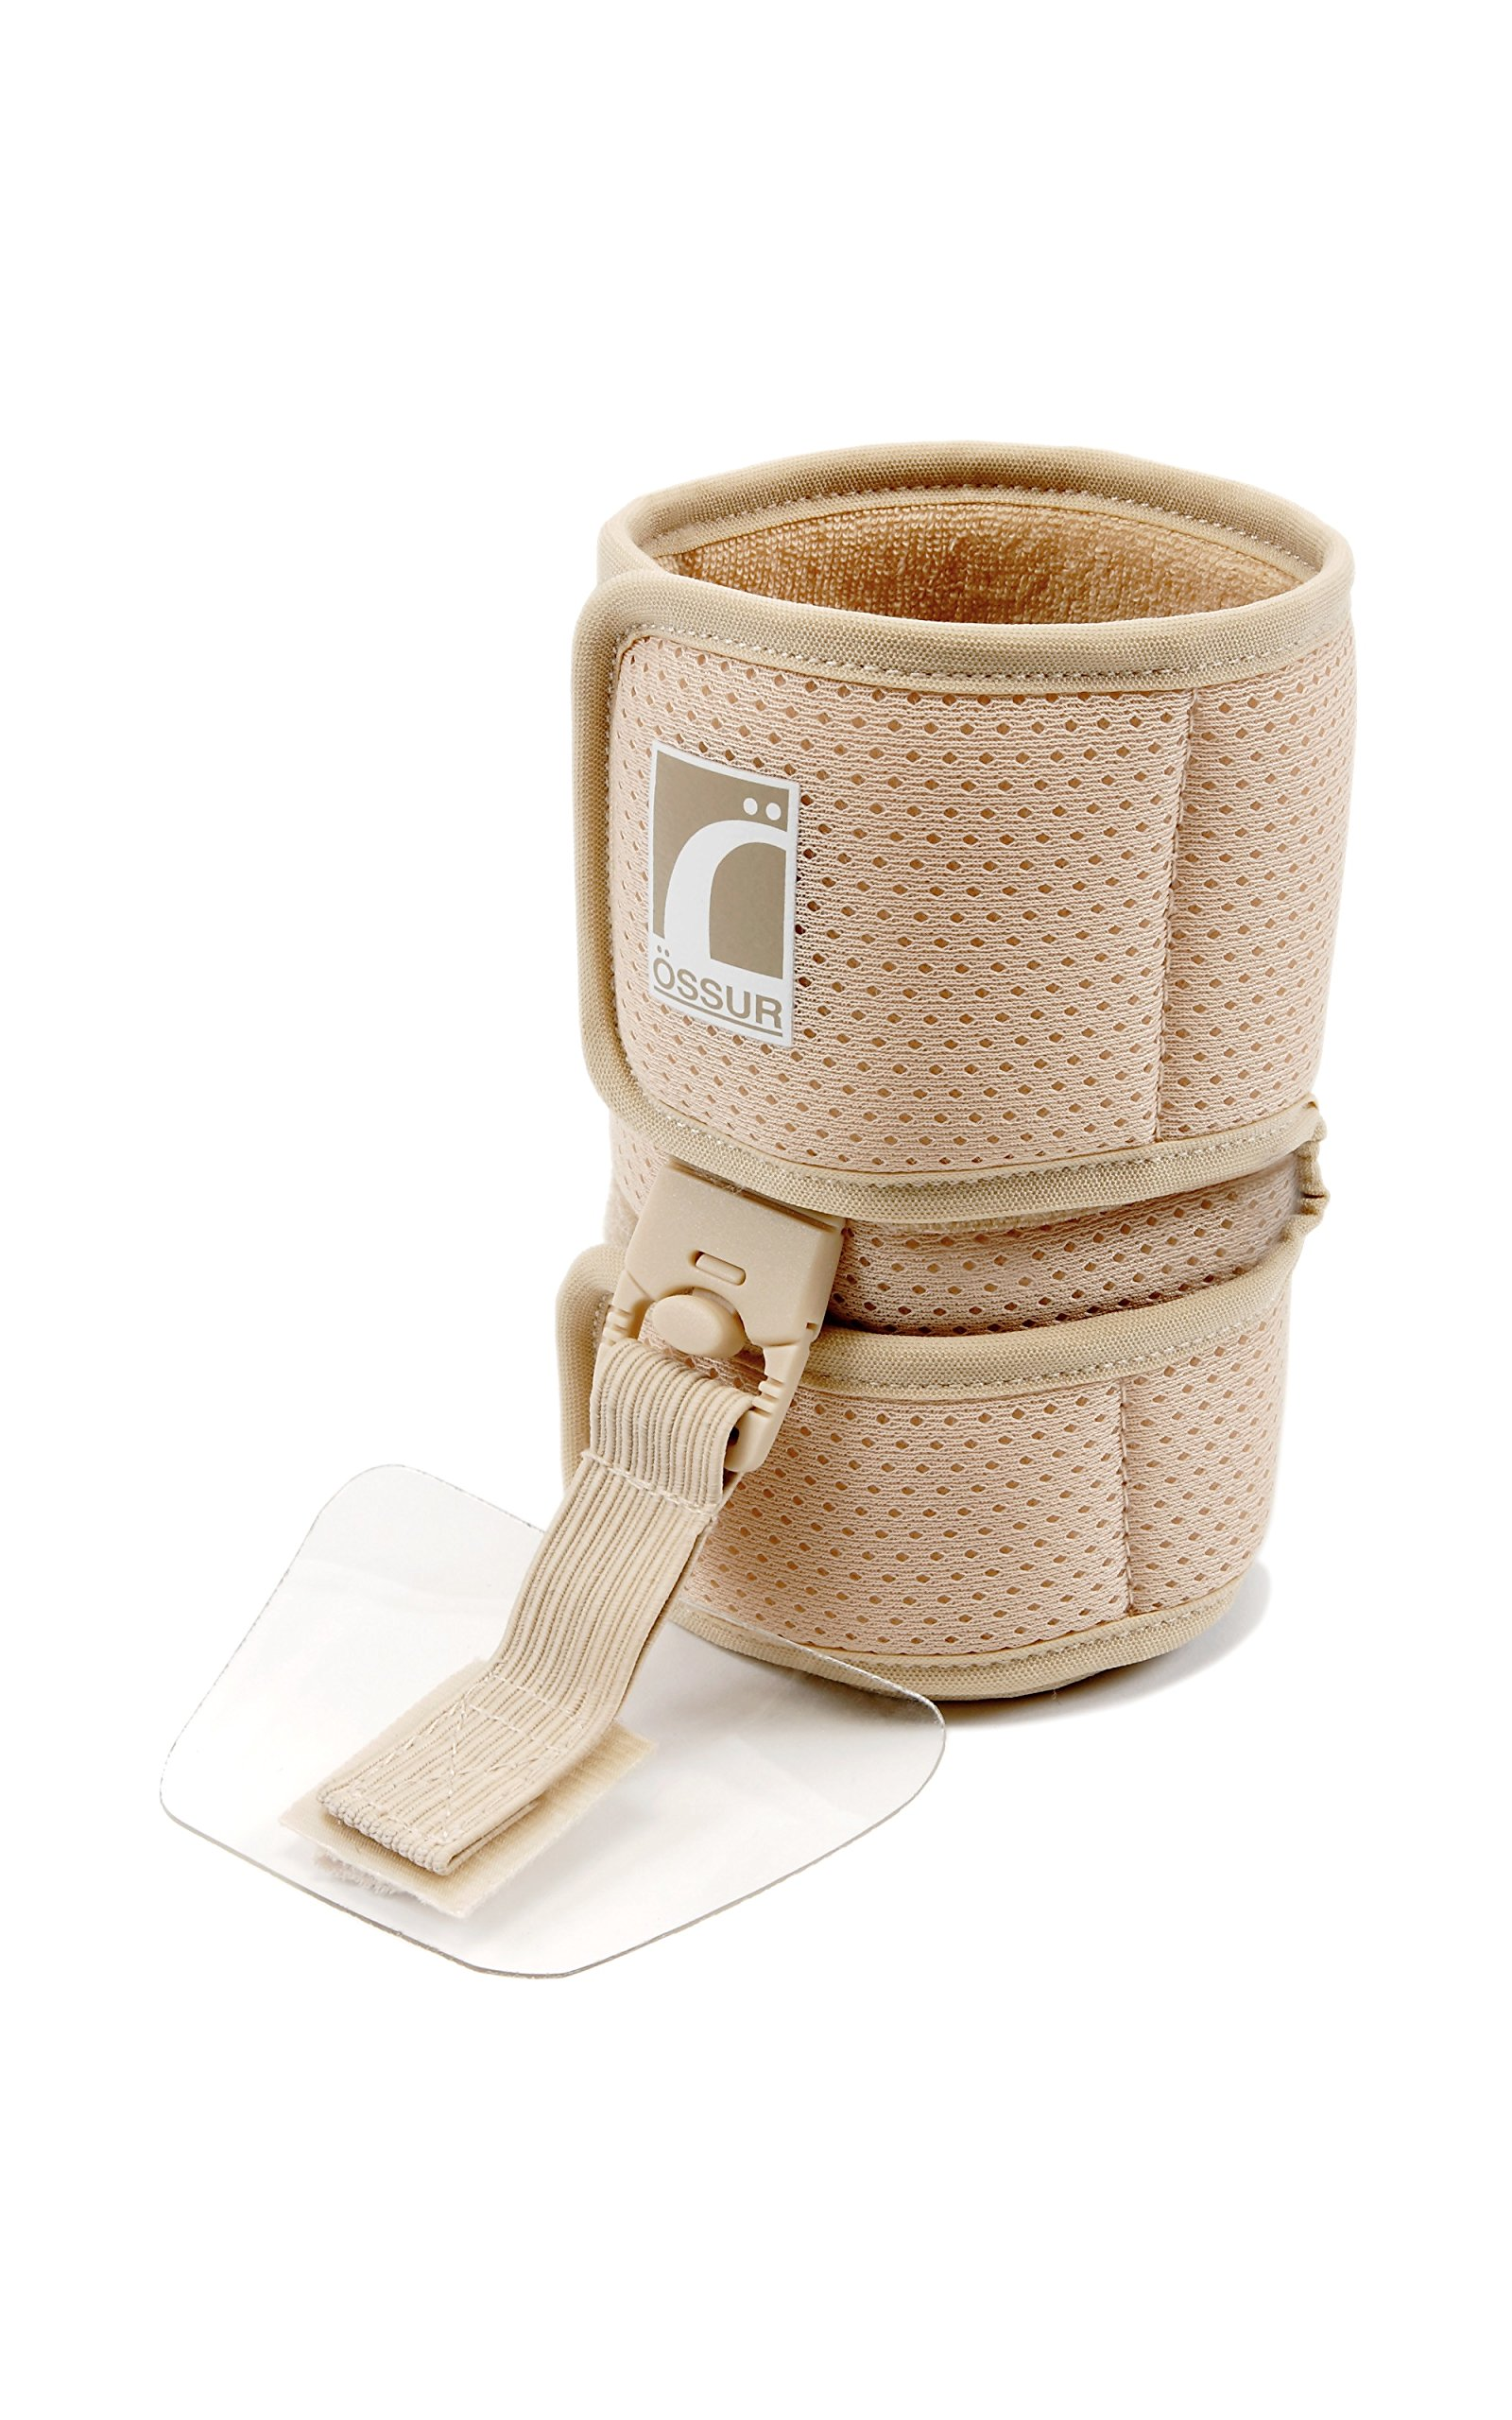 Ossur Foot-Up Drop Foot Brace - Orthosis Ankle Brace Support Comfort Cushioned Adjustable Wrap (Medium, Beige) by Ossur